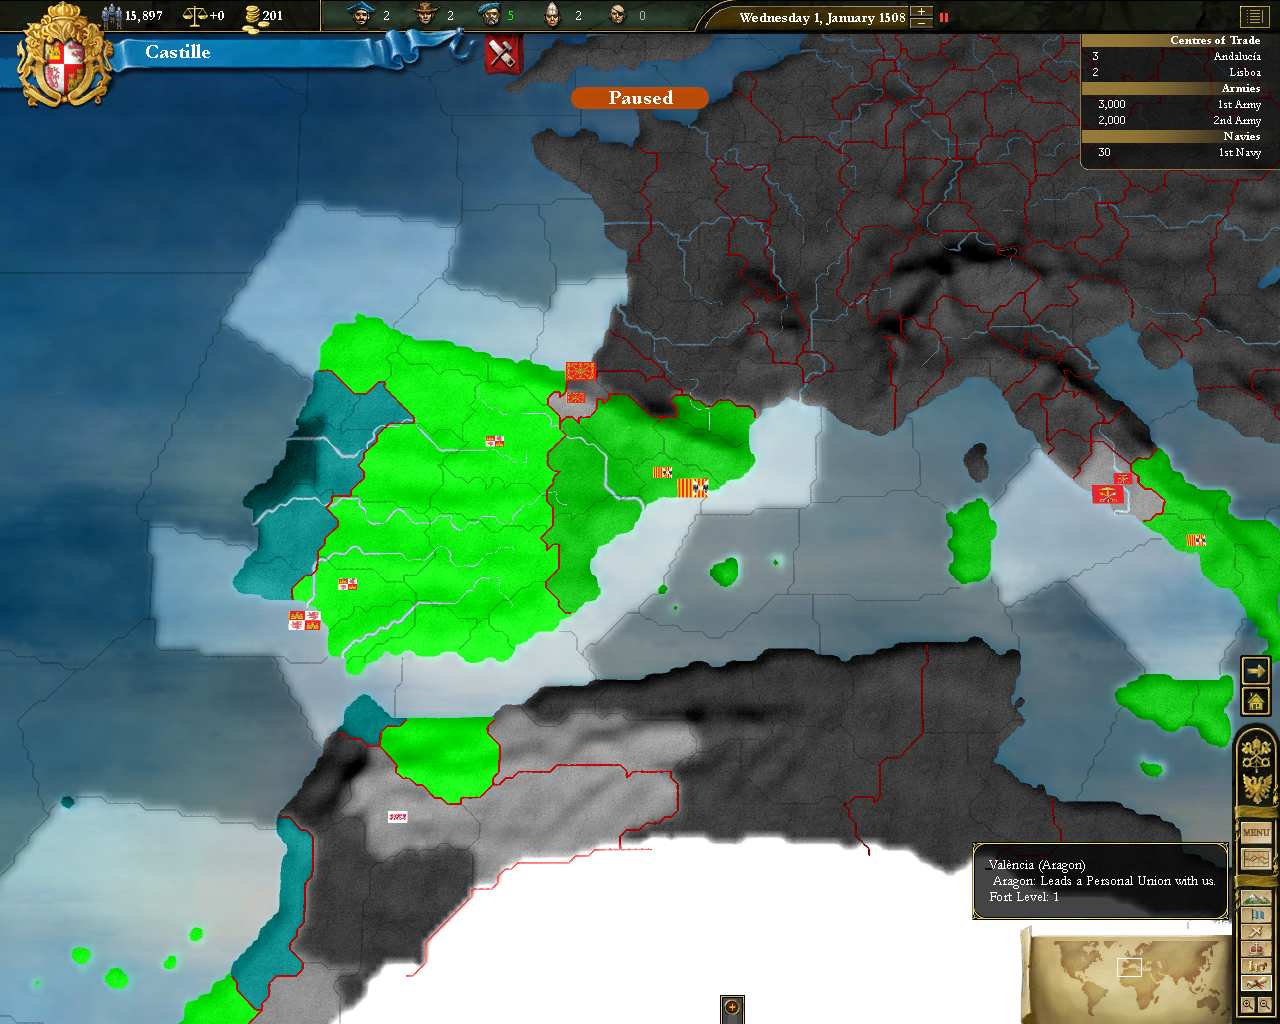 Europa Universalis III Windows Diplomacy map overlay, selected country in bright green, its allies in green, its royal marriages in turquise and countries it is at war against in red.